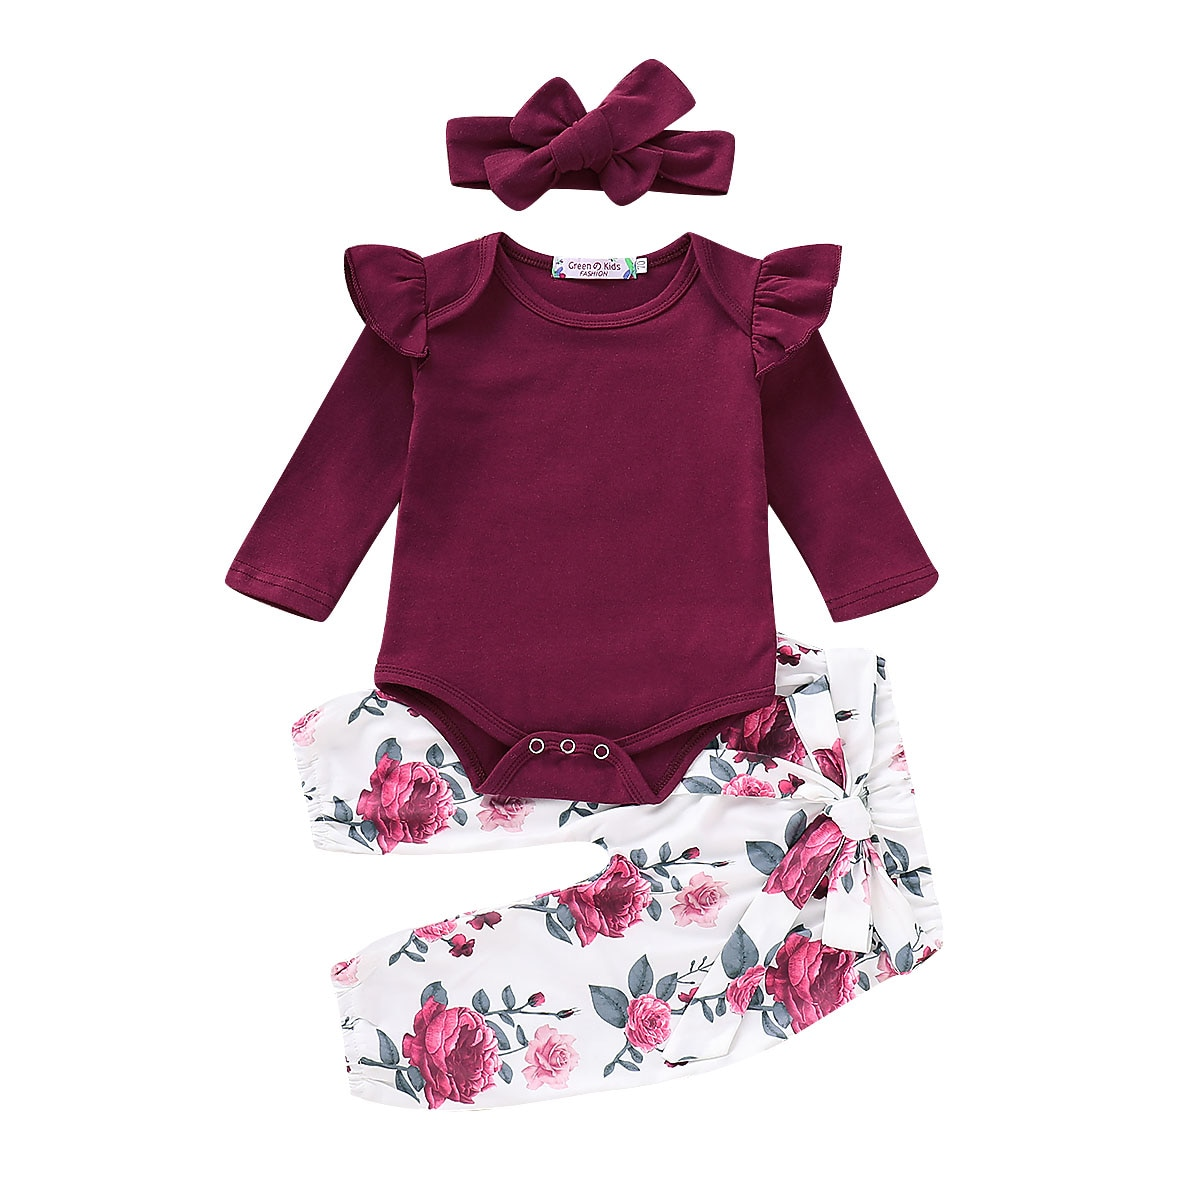 Newborn Baby Girl Clothes Long Sleeve Tops Romper Flower Leggings Pants Outfit